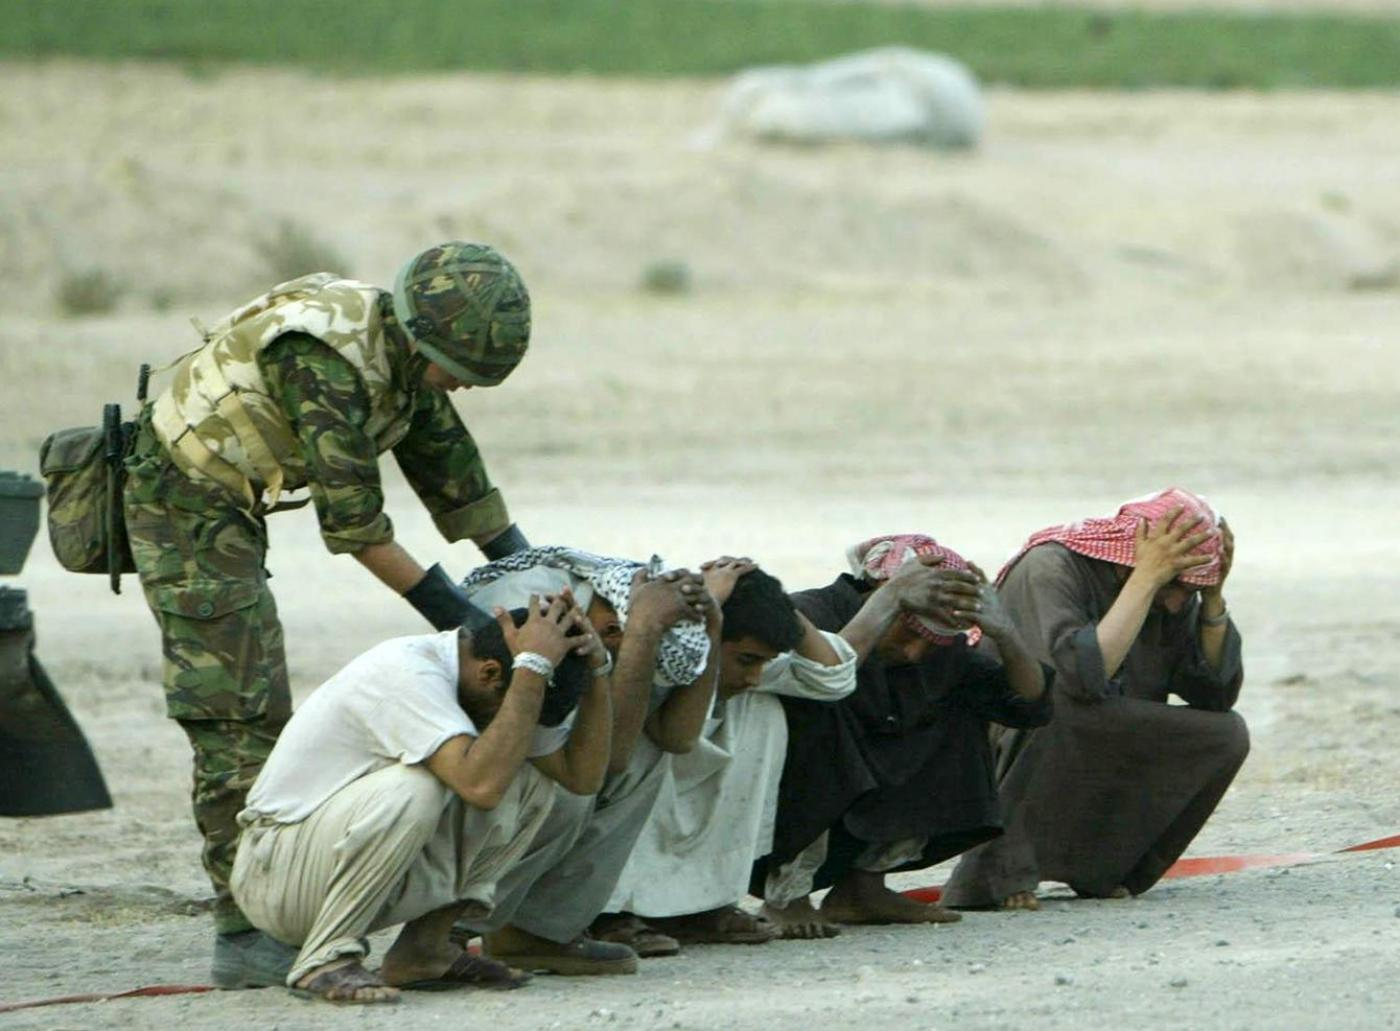 A British soldier searches Iraqis at a checkpoint on the road to Basra in 2003